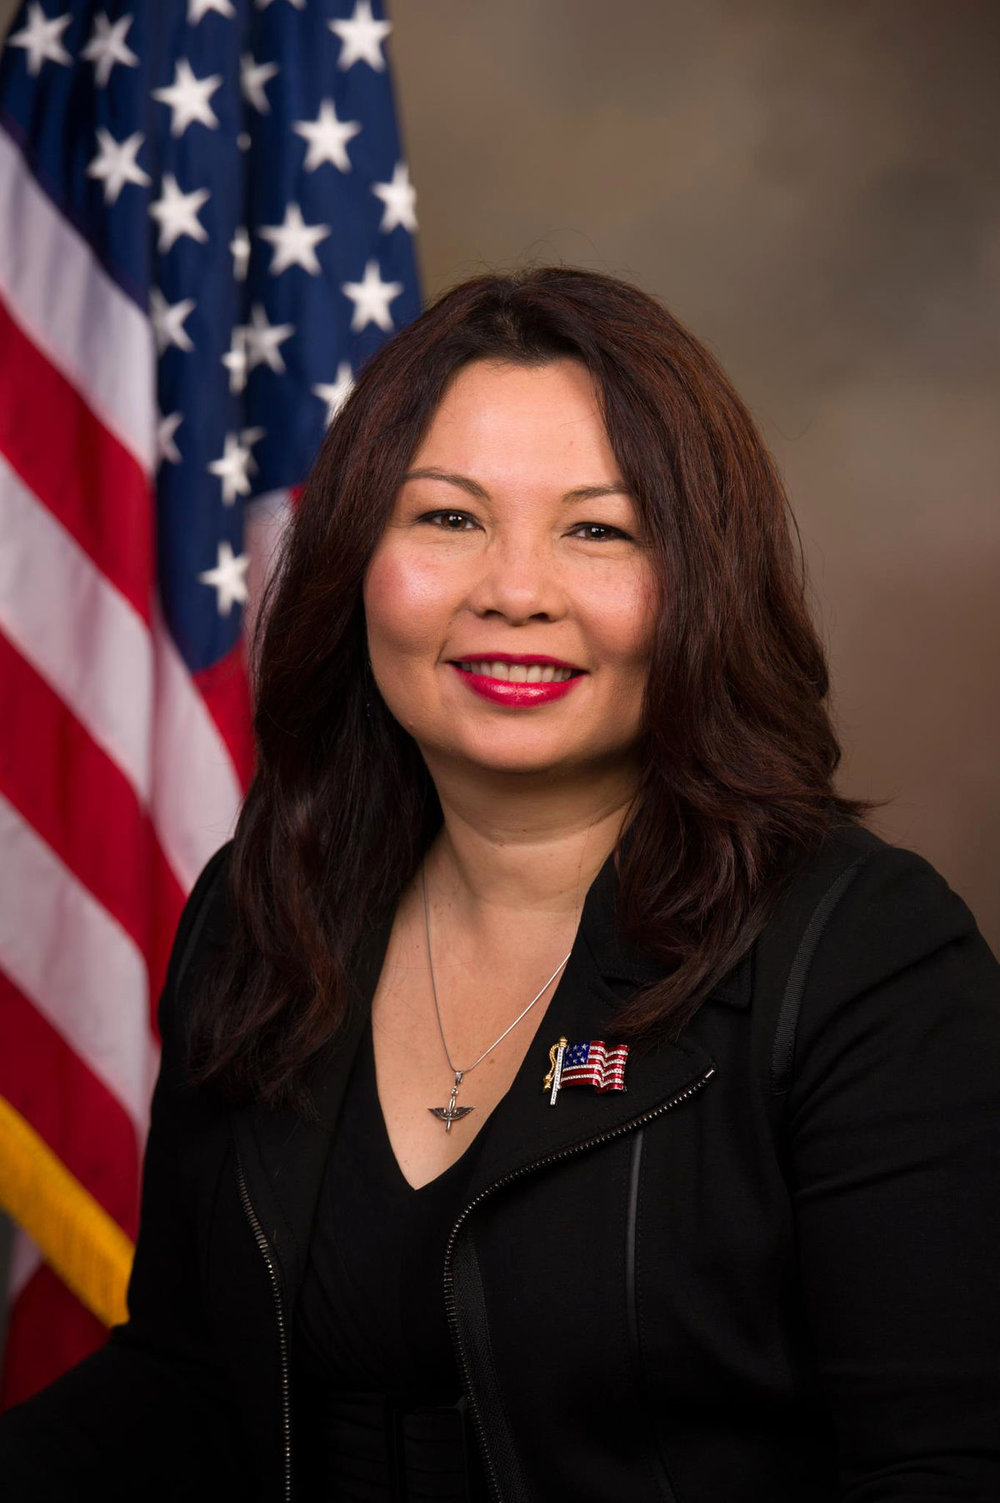 Tammy Duckworth - First disabled woman elected to congress